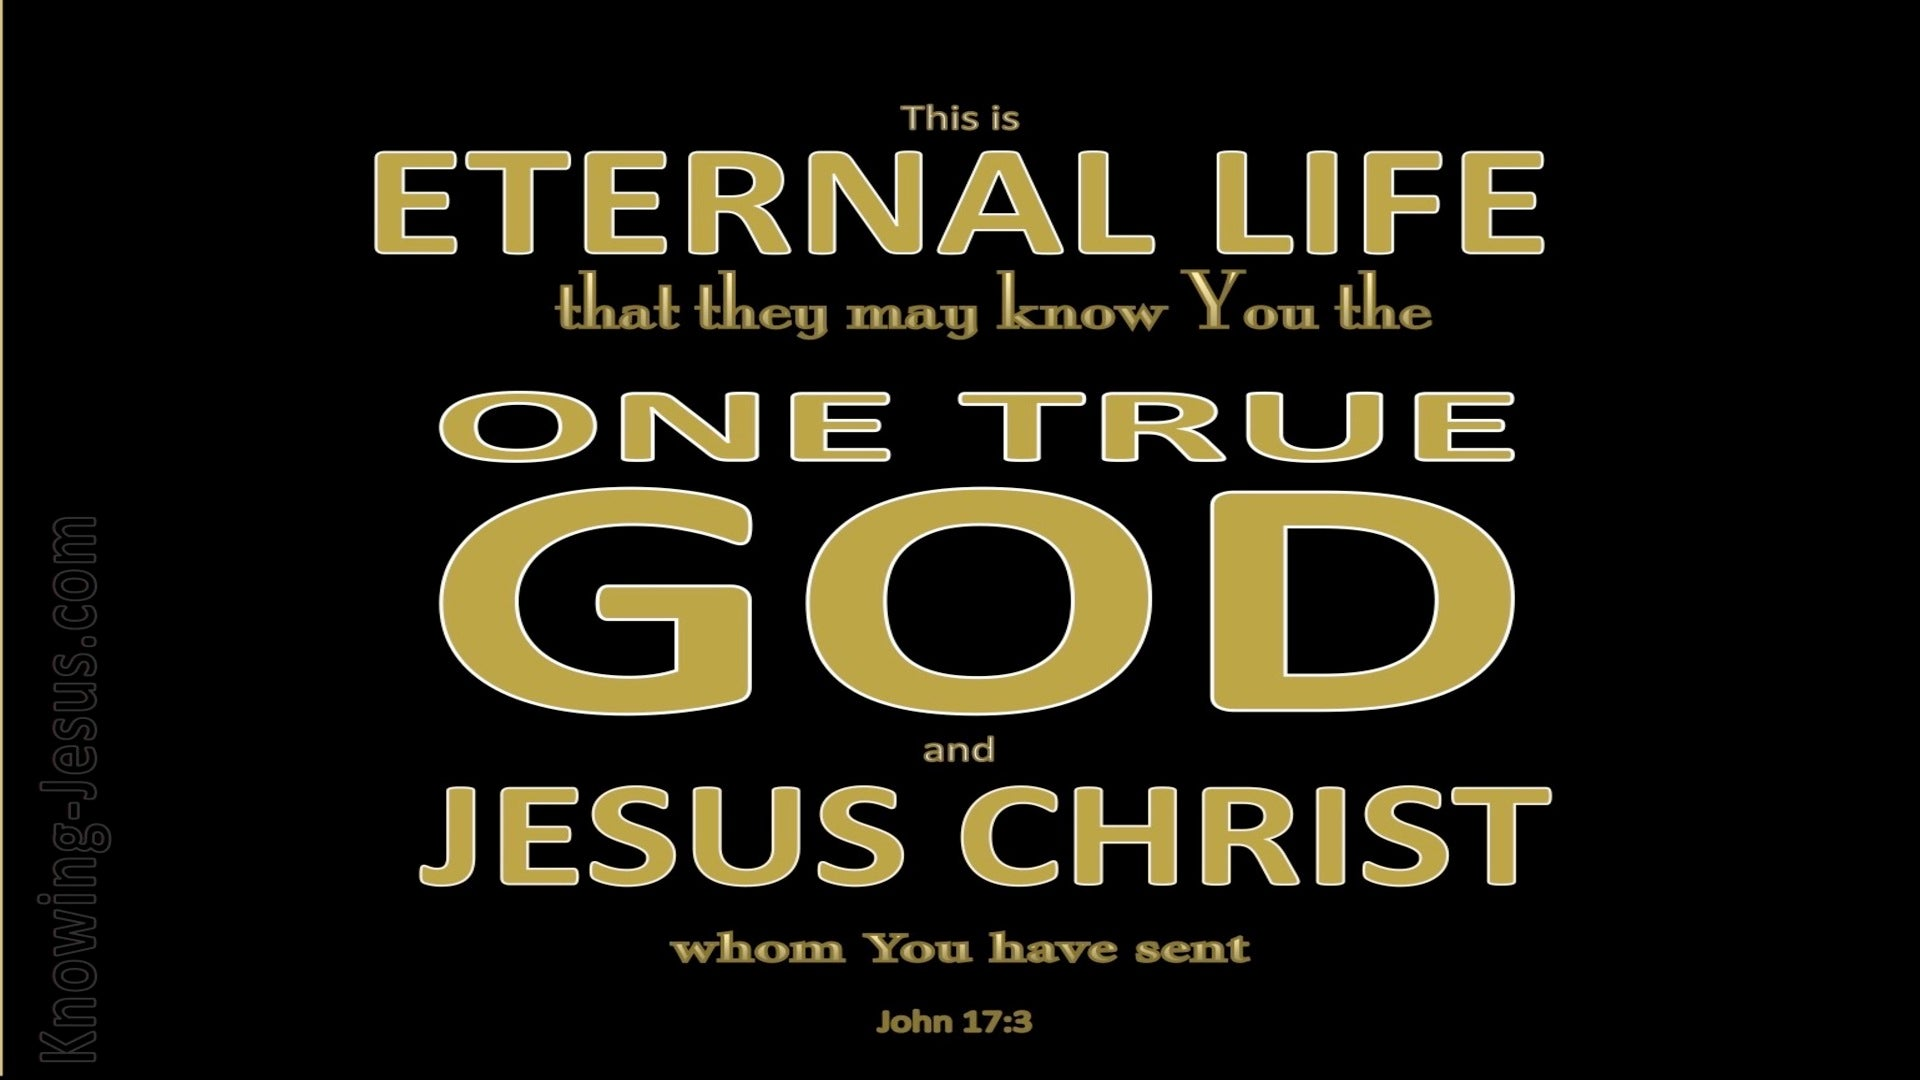 John 17:3 This Is Eternal Life (black)